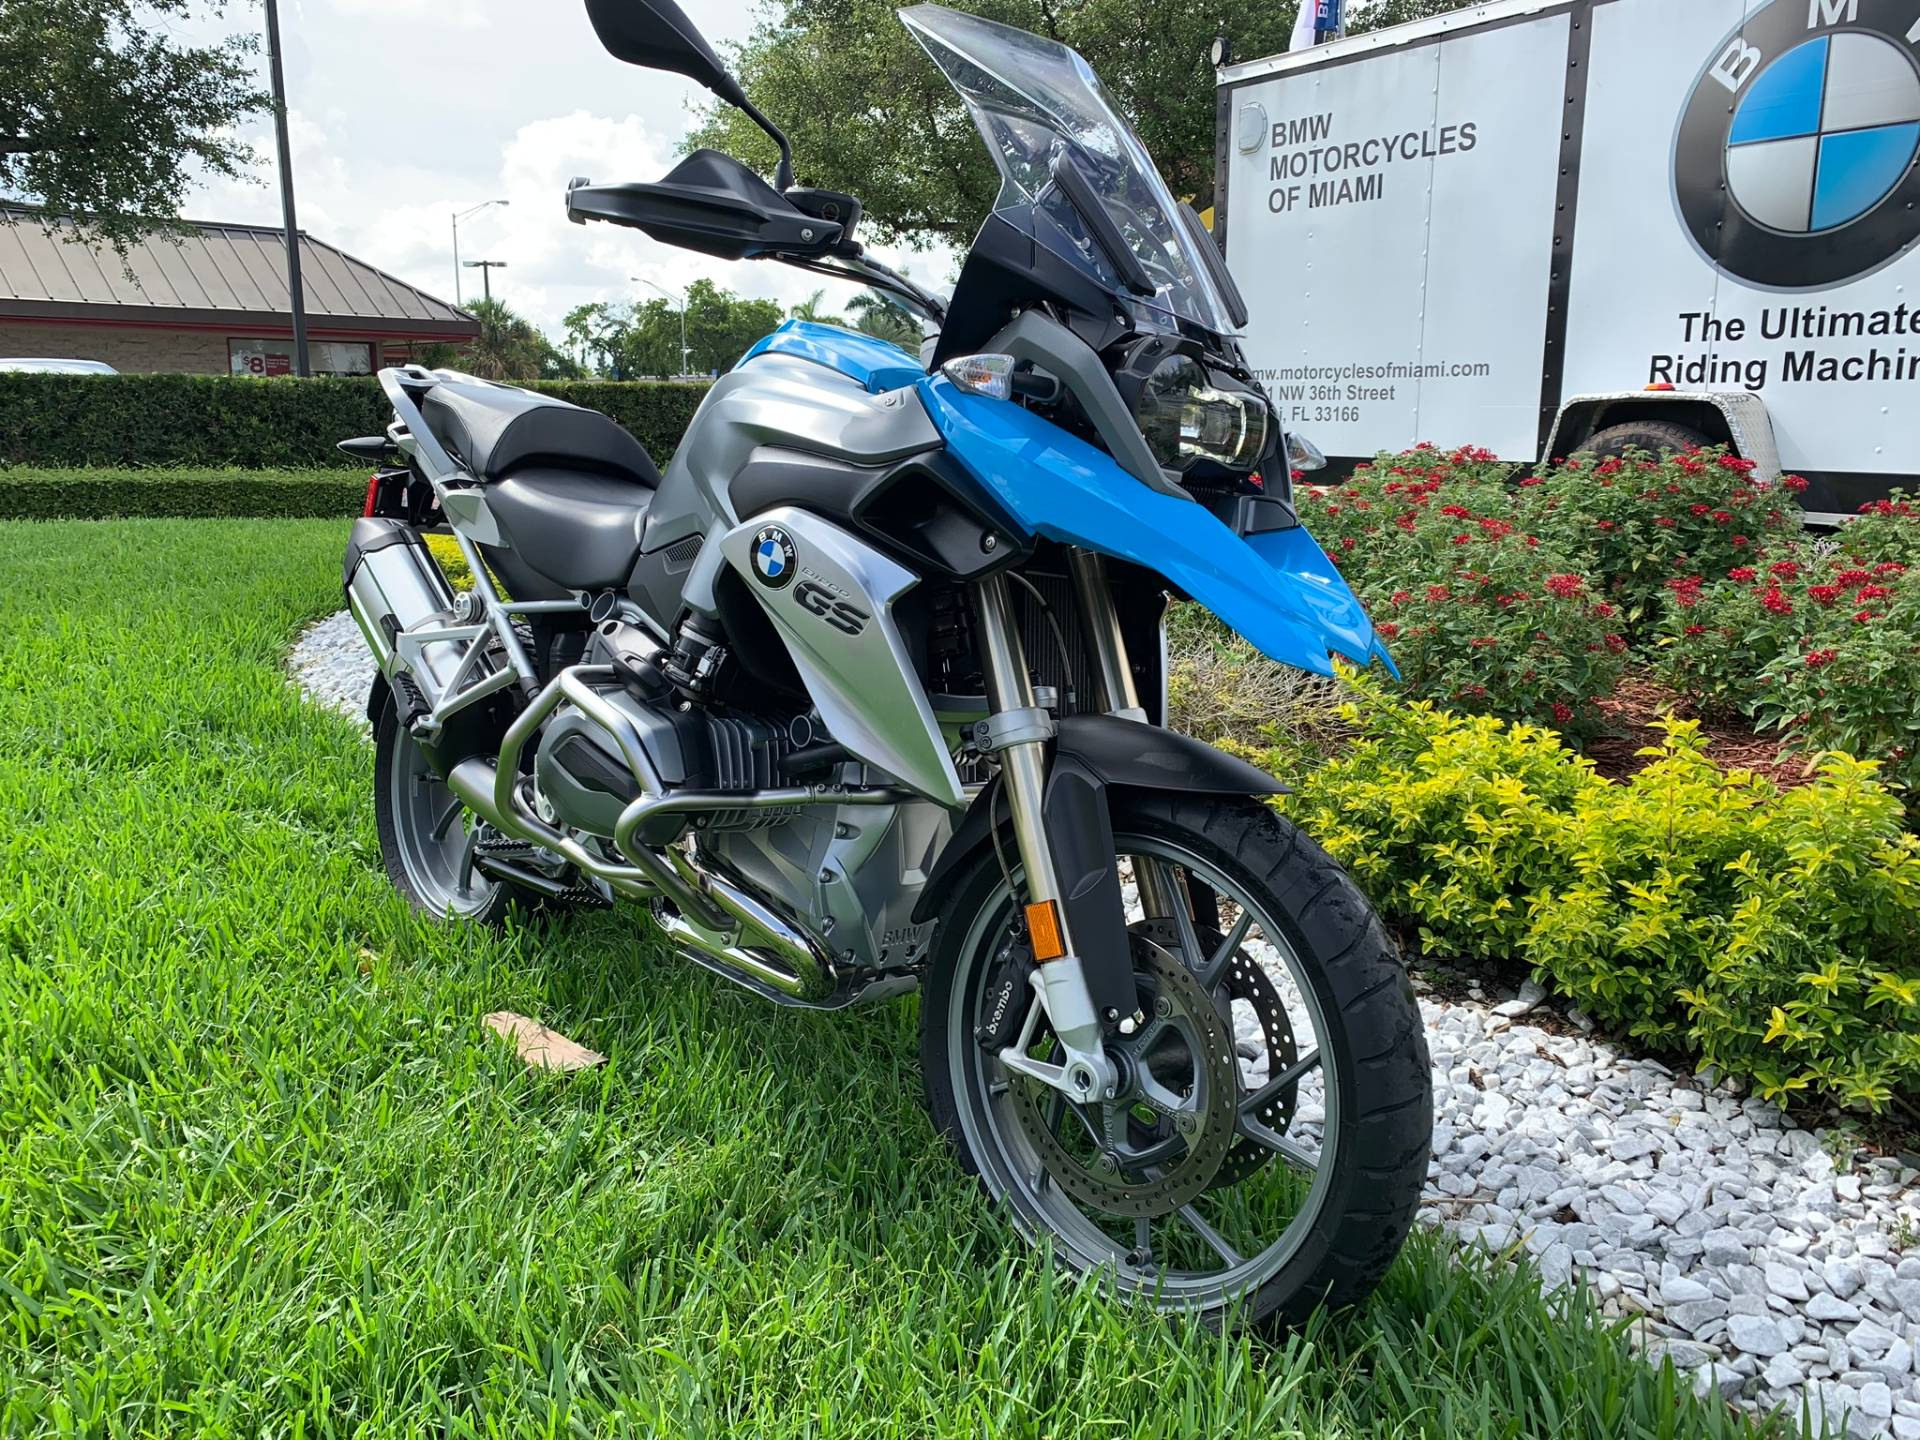 Used 2014 BMW R 1200 GS for sale, Pre-owned BMW R1200GS for sale, BMW Motorcycle Adventure, used BMW GS Fire Blue, BMW Motorcycles of Miami, Motorcycles of Miami, Motorcycles Miami, New Motorcycles, Used Motorcycles, pre-owned. #BMWMotorcyclesOfMiami #MotorcyclesOfMiami - Photo 28